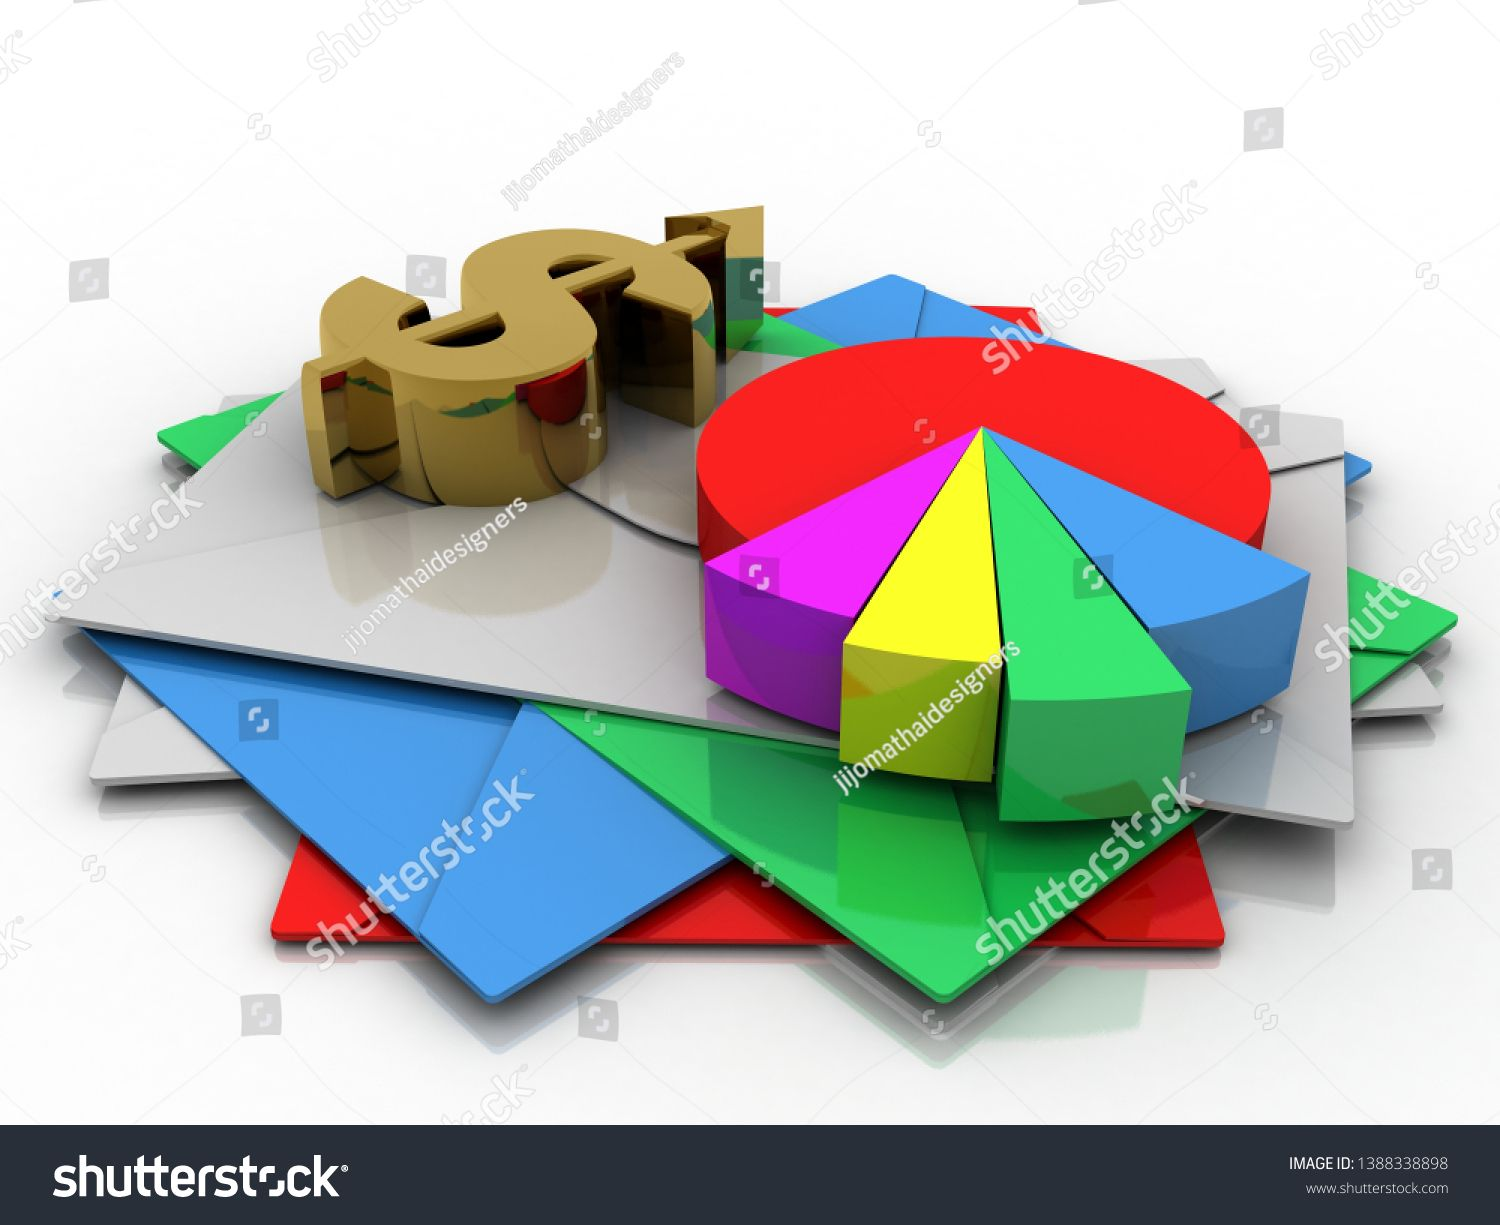 3d Rendering Stock Market Online Business Concept Business Graph With Dollar Sign Sponsored Online Business Marketing Business Stock Images Online Marketing